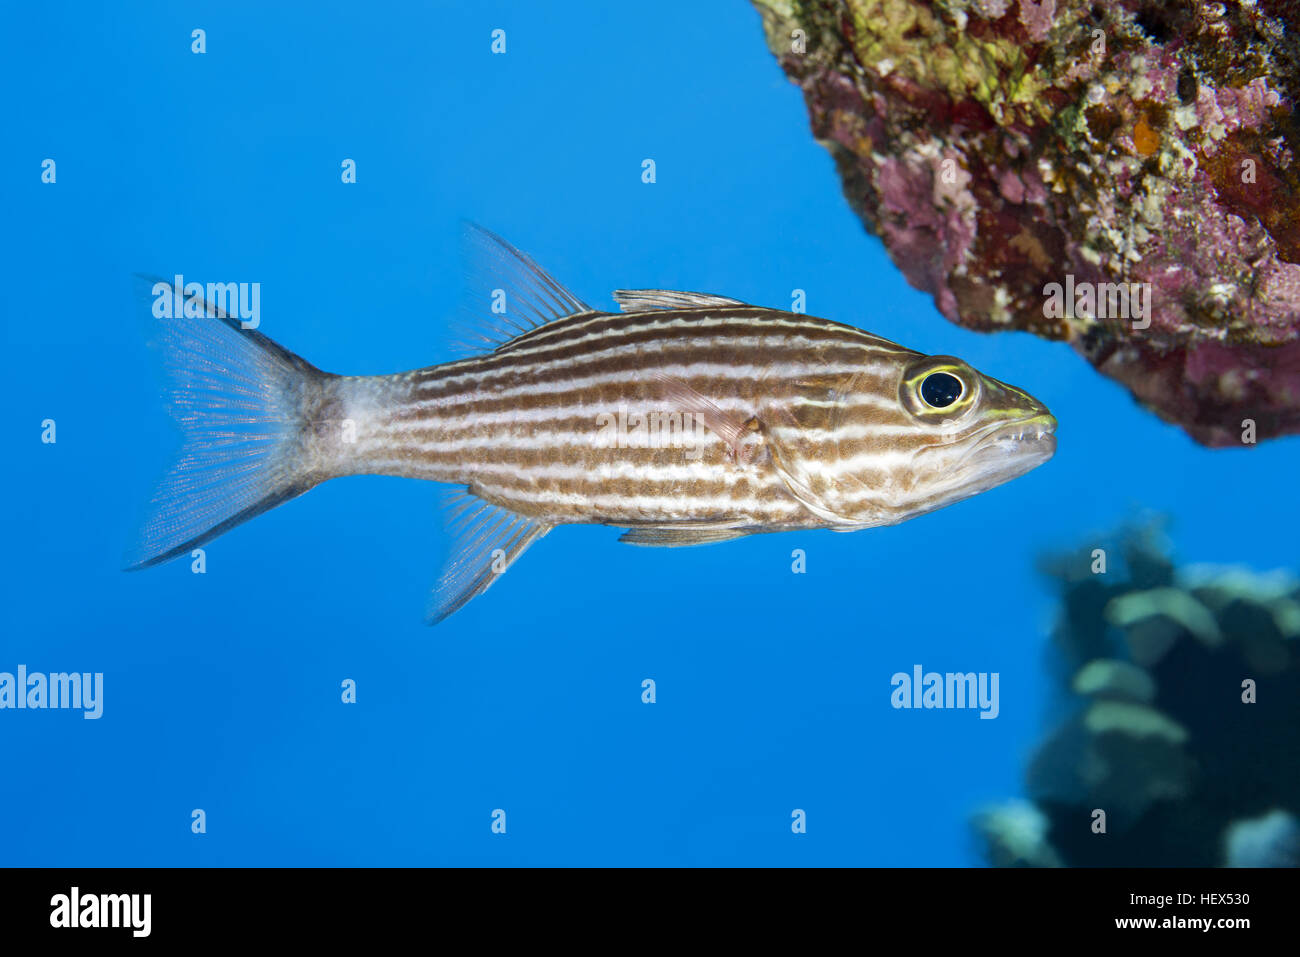 Largetoothed Cardinalfish, Pacific tiger cardinalfish or Big-toothed cardinal (Cheilodipterus macrodon) swims near Stock Photo